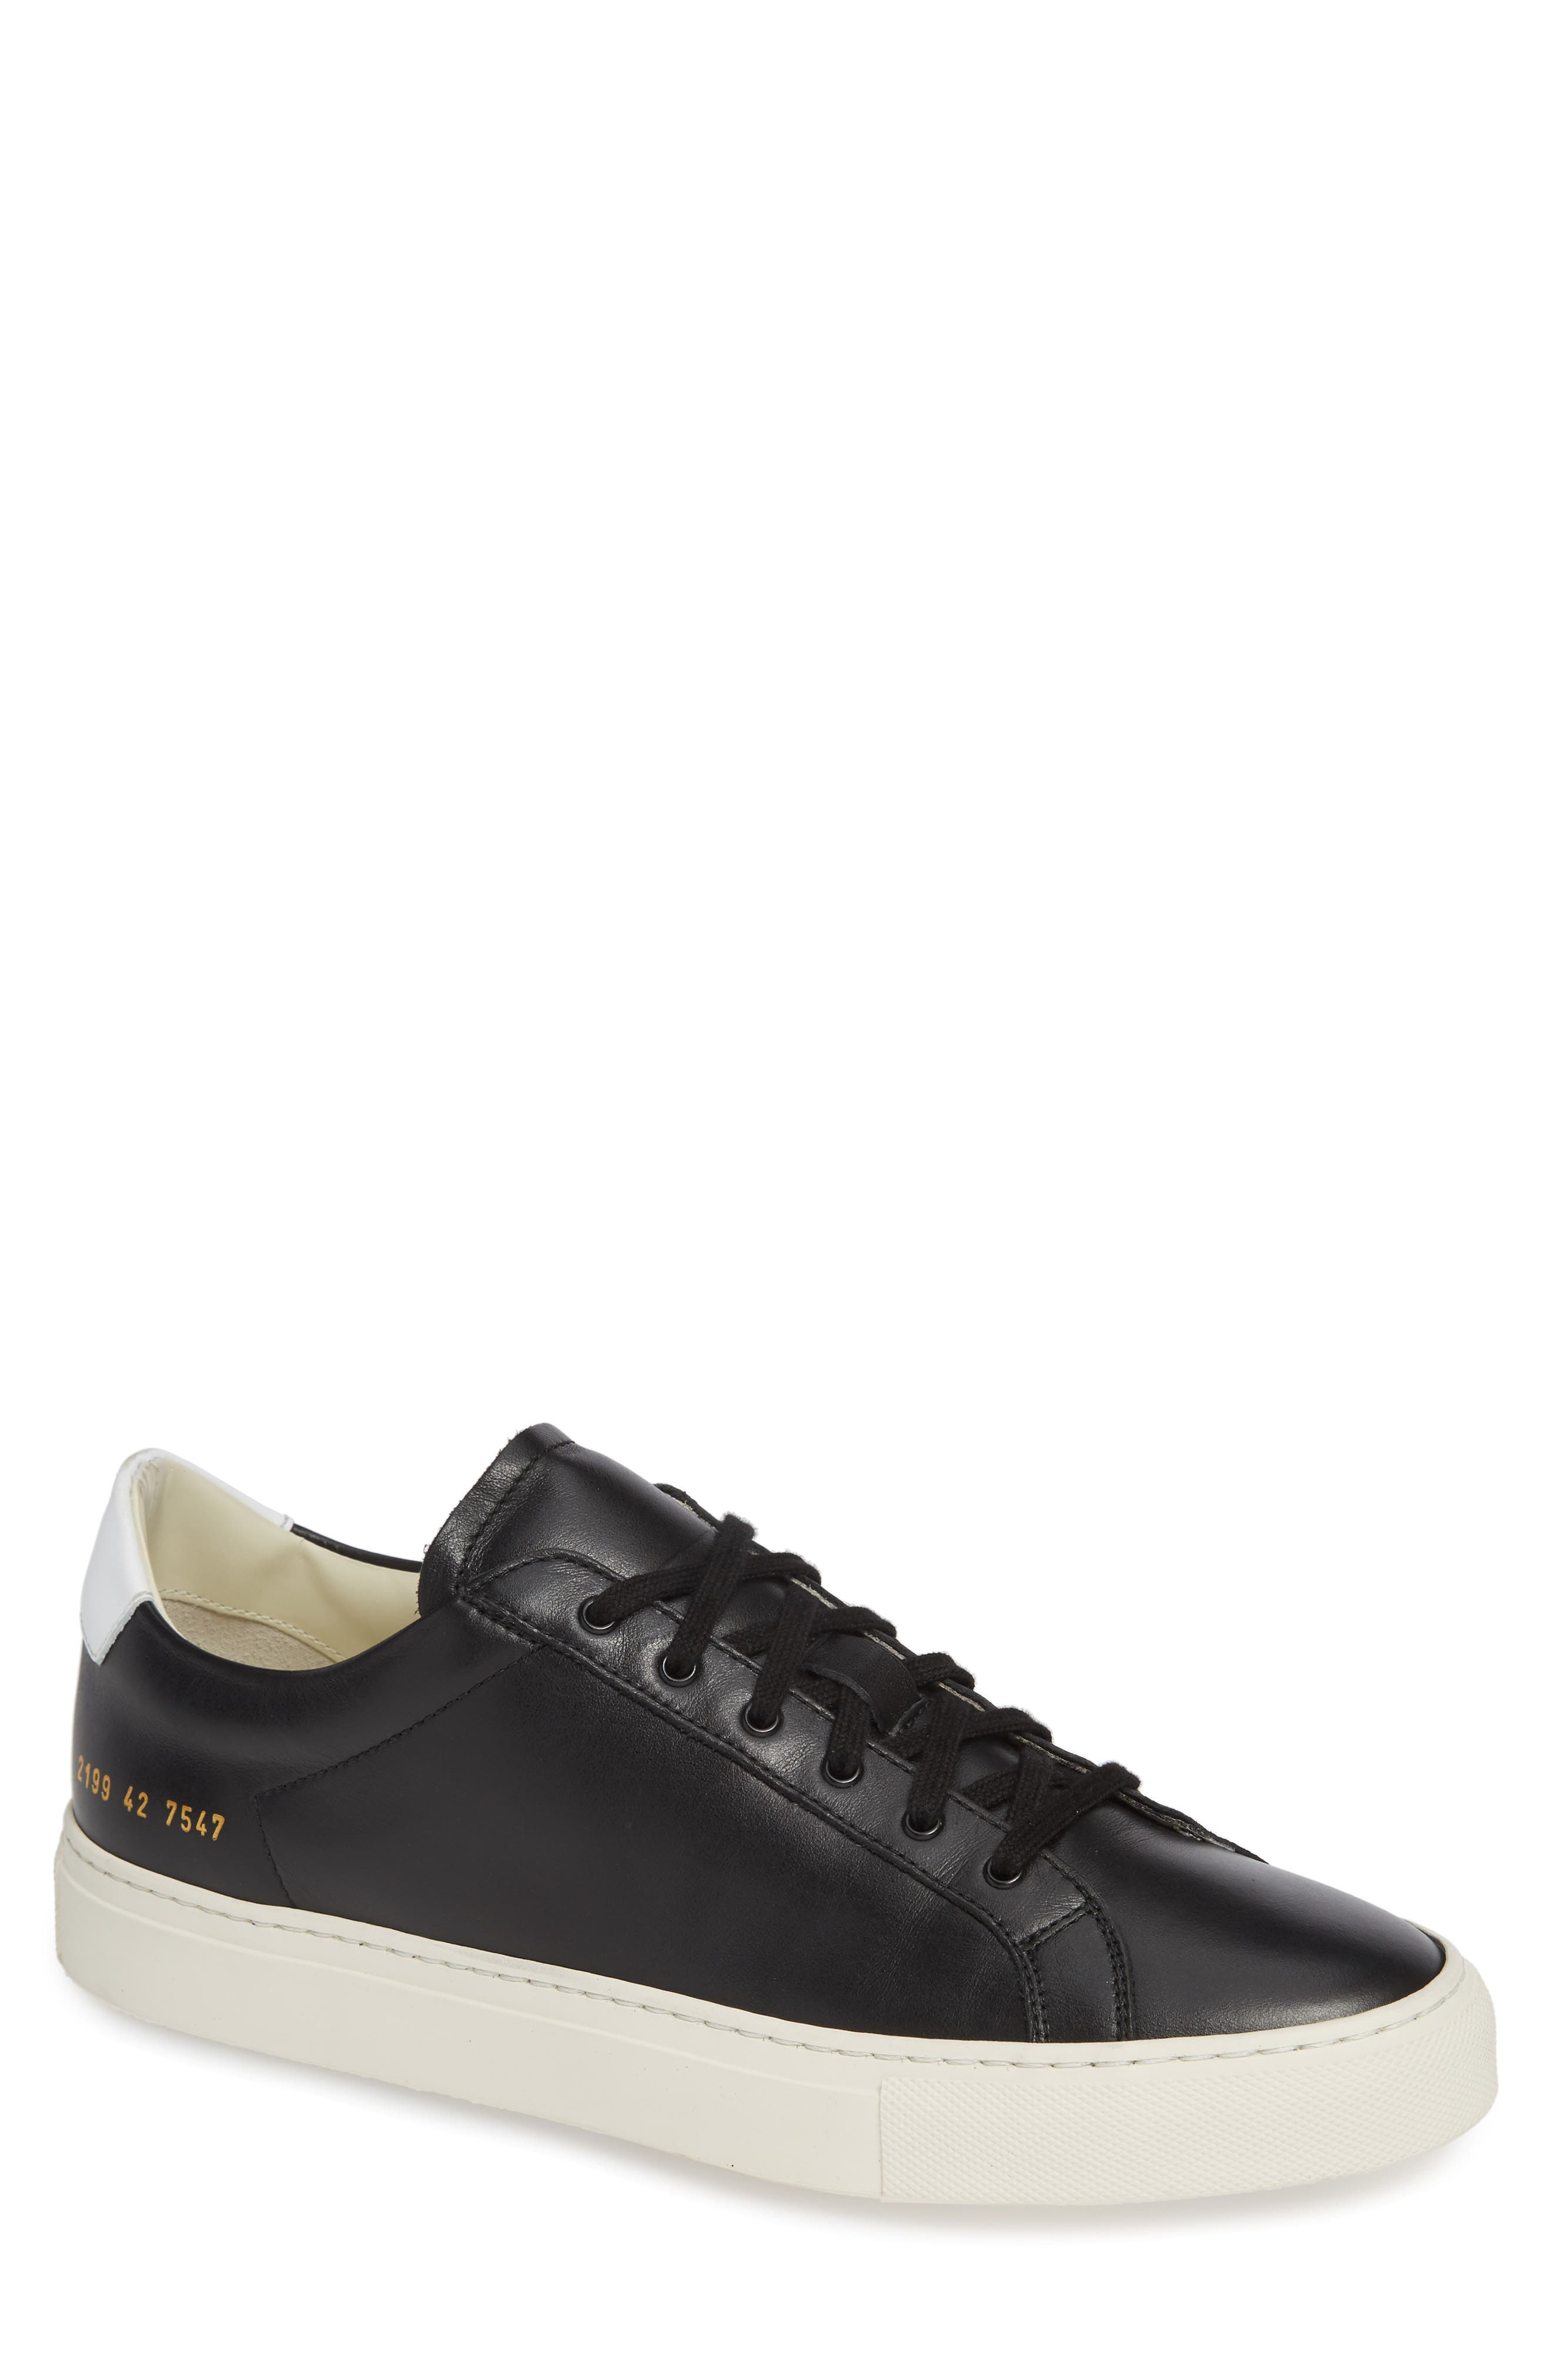 COMMON PROJECTS, Retro Sneaker, Main thumbnail 1, color, BLACK